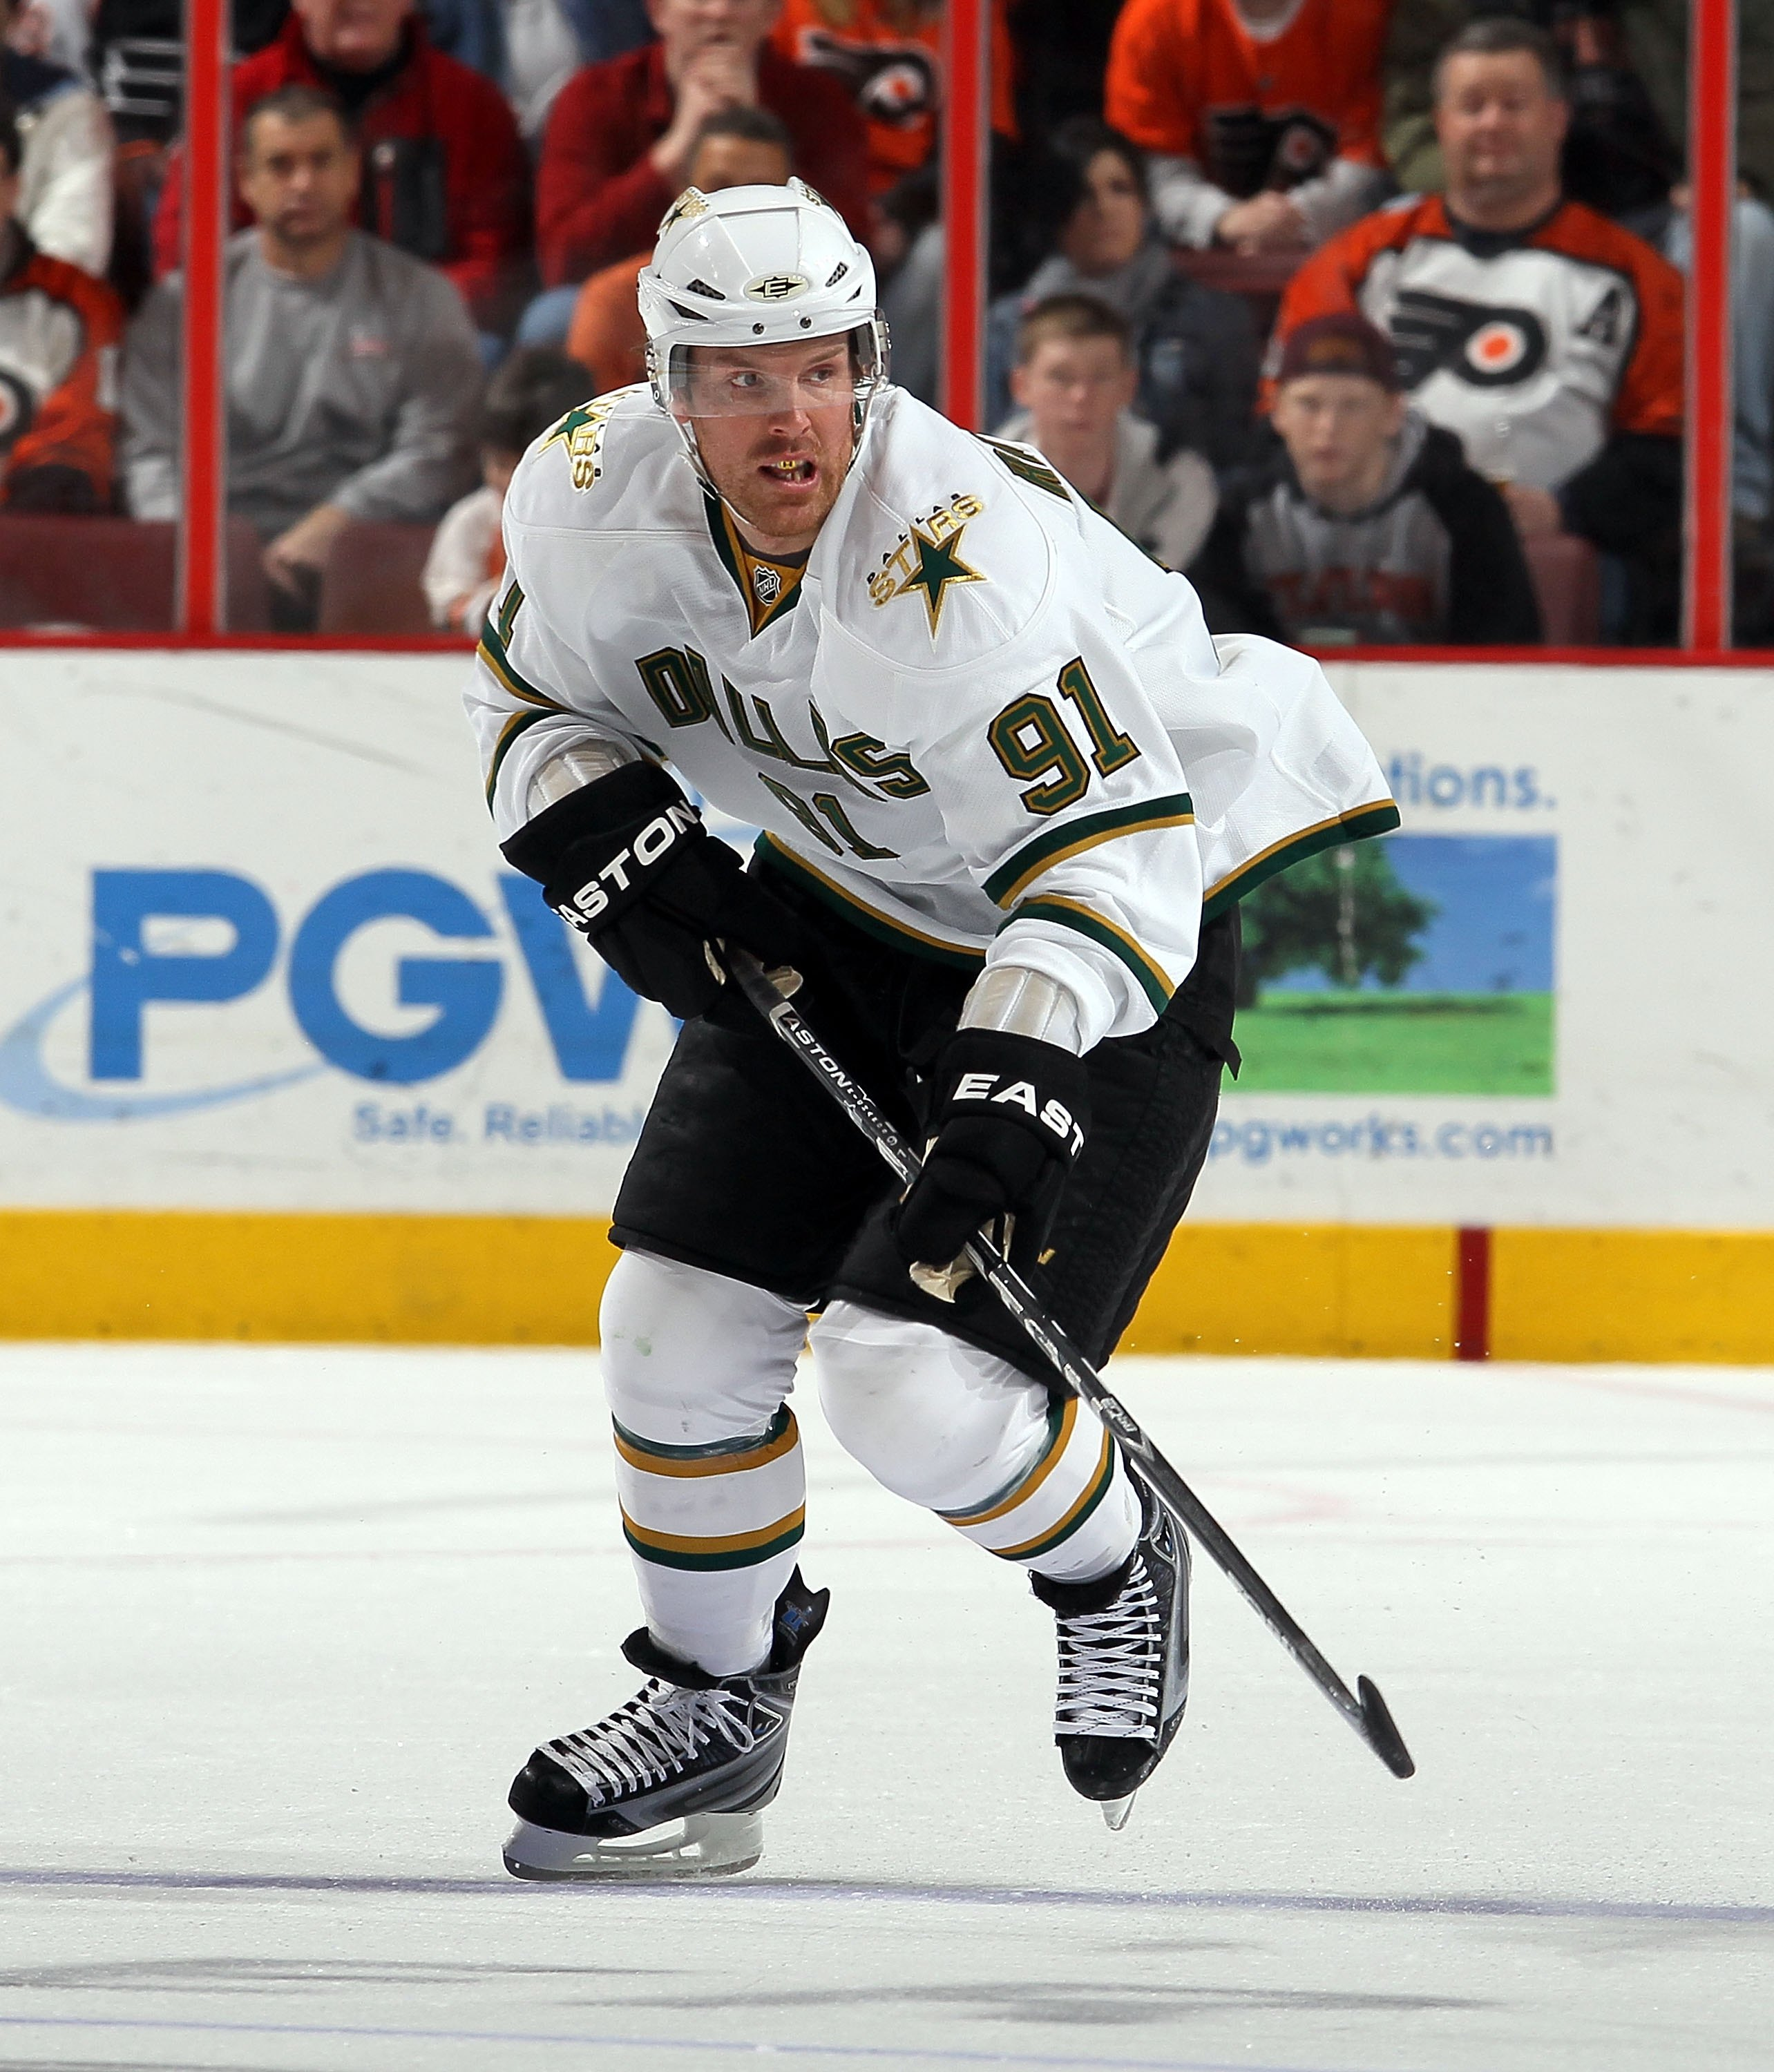 c08faf9f82c NHL Predictions  Each Team s Player Under the Most Pressure in the 2nd Half